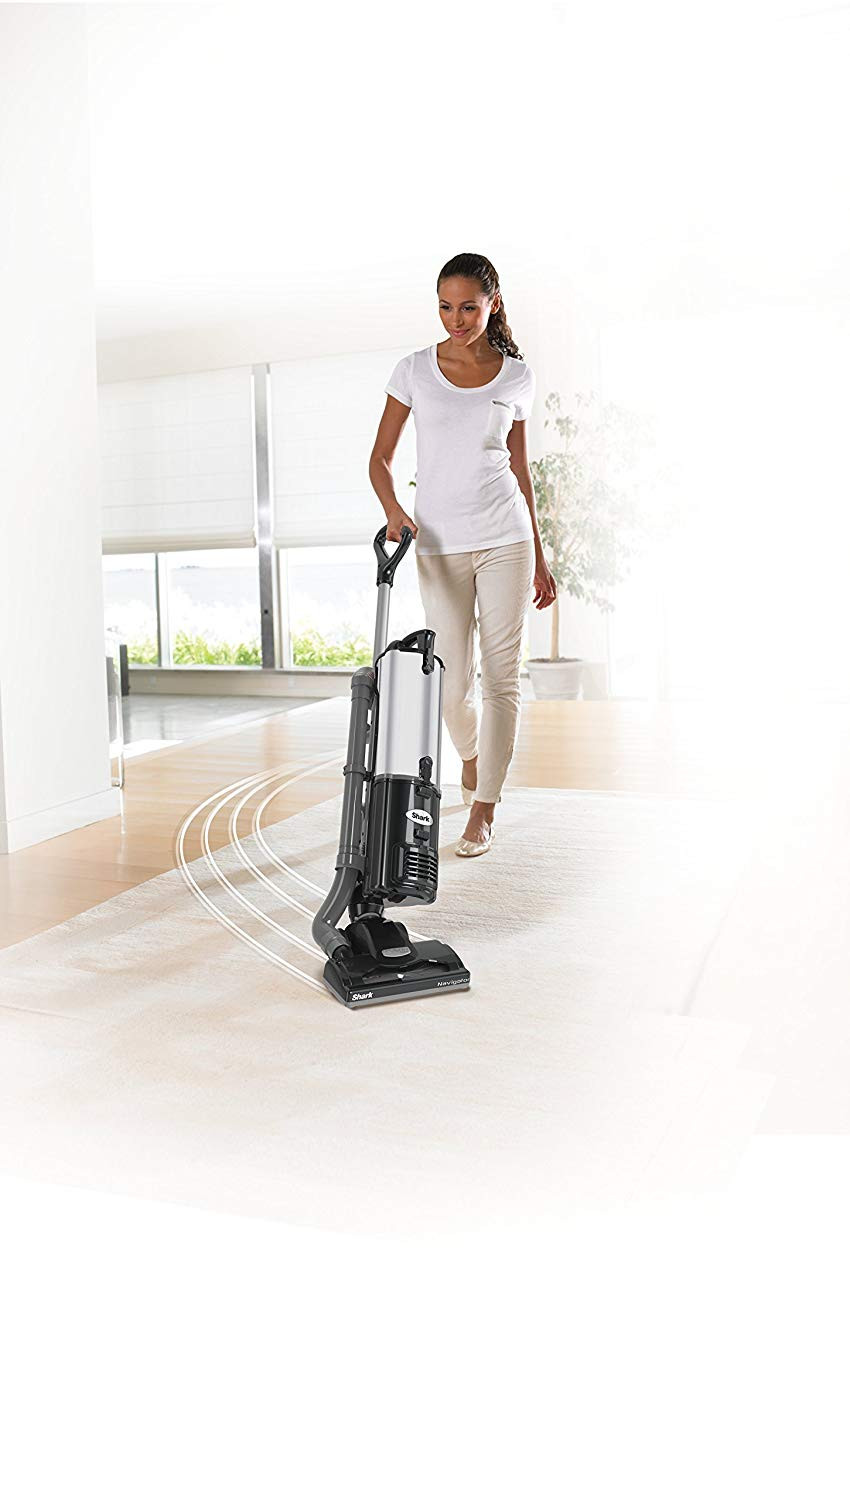 best vacuum for pet hair and hardwood floors 2016 of amazon com shark navigator upright corded bagless vacuum inside amazon com shark navigator upright corded bagless vacuum lightweight large capacity for carpet and hard floor cleaning with swivel steering nv27gr